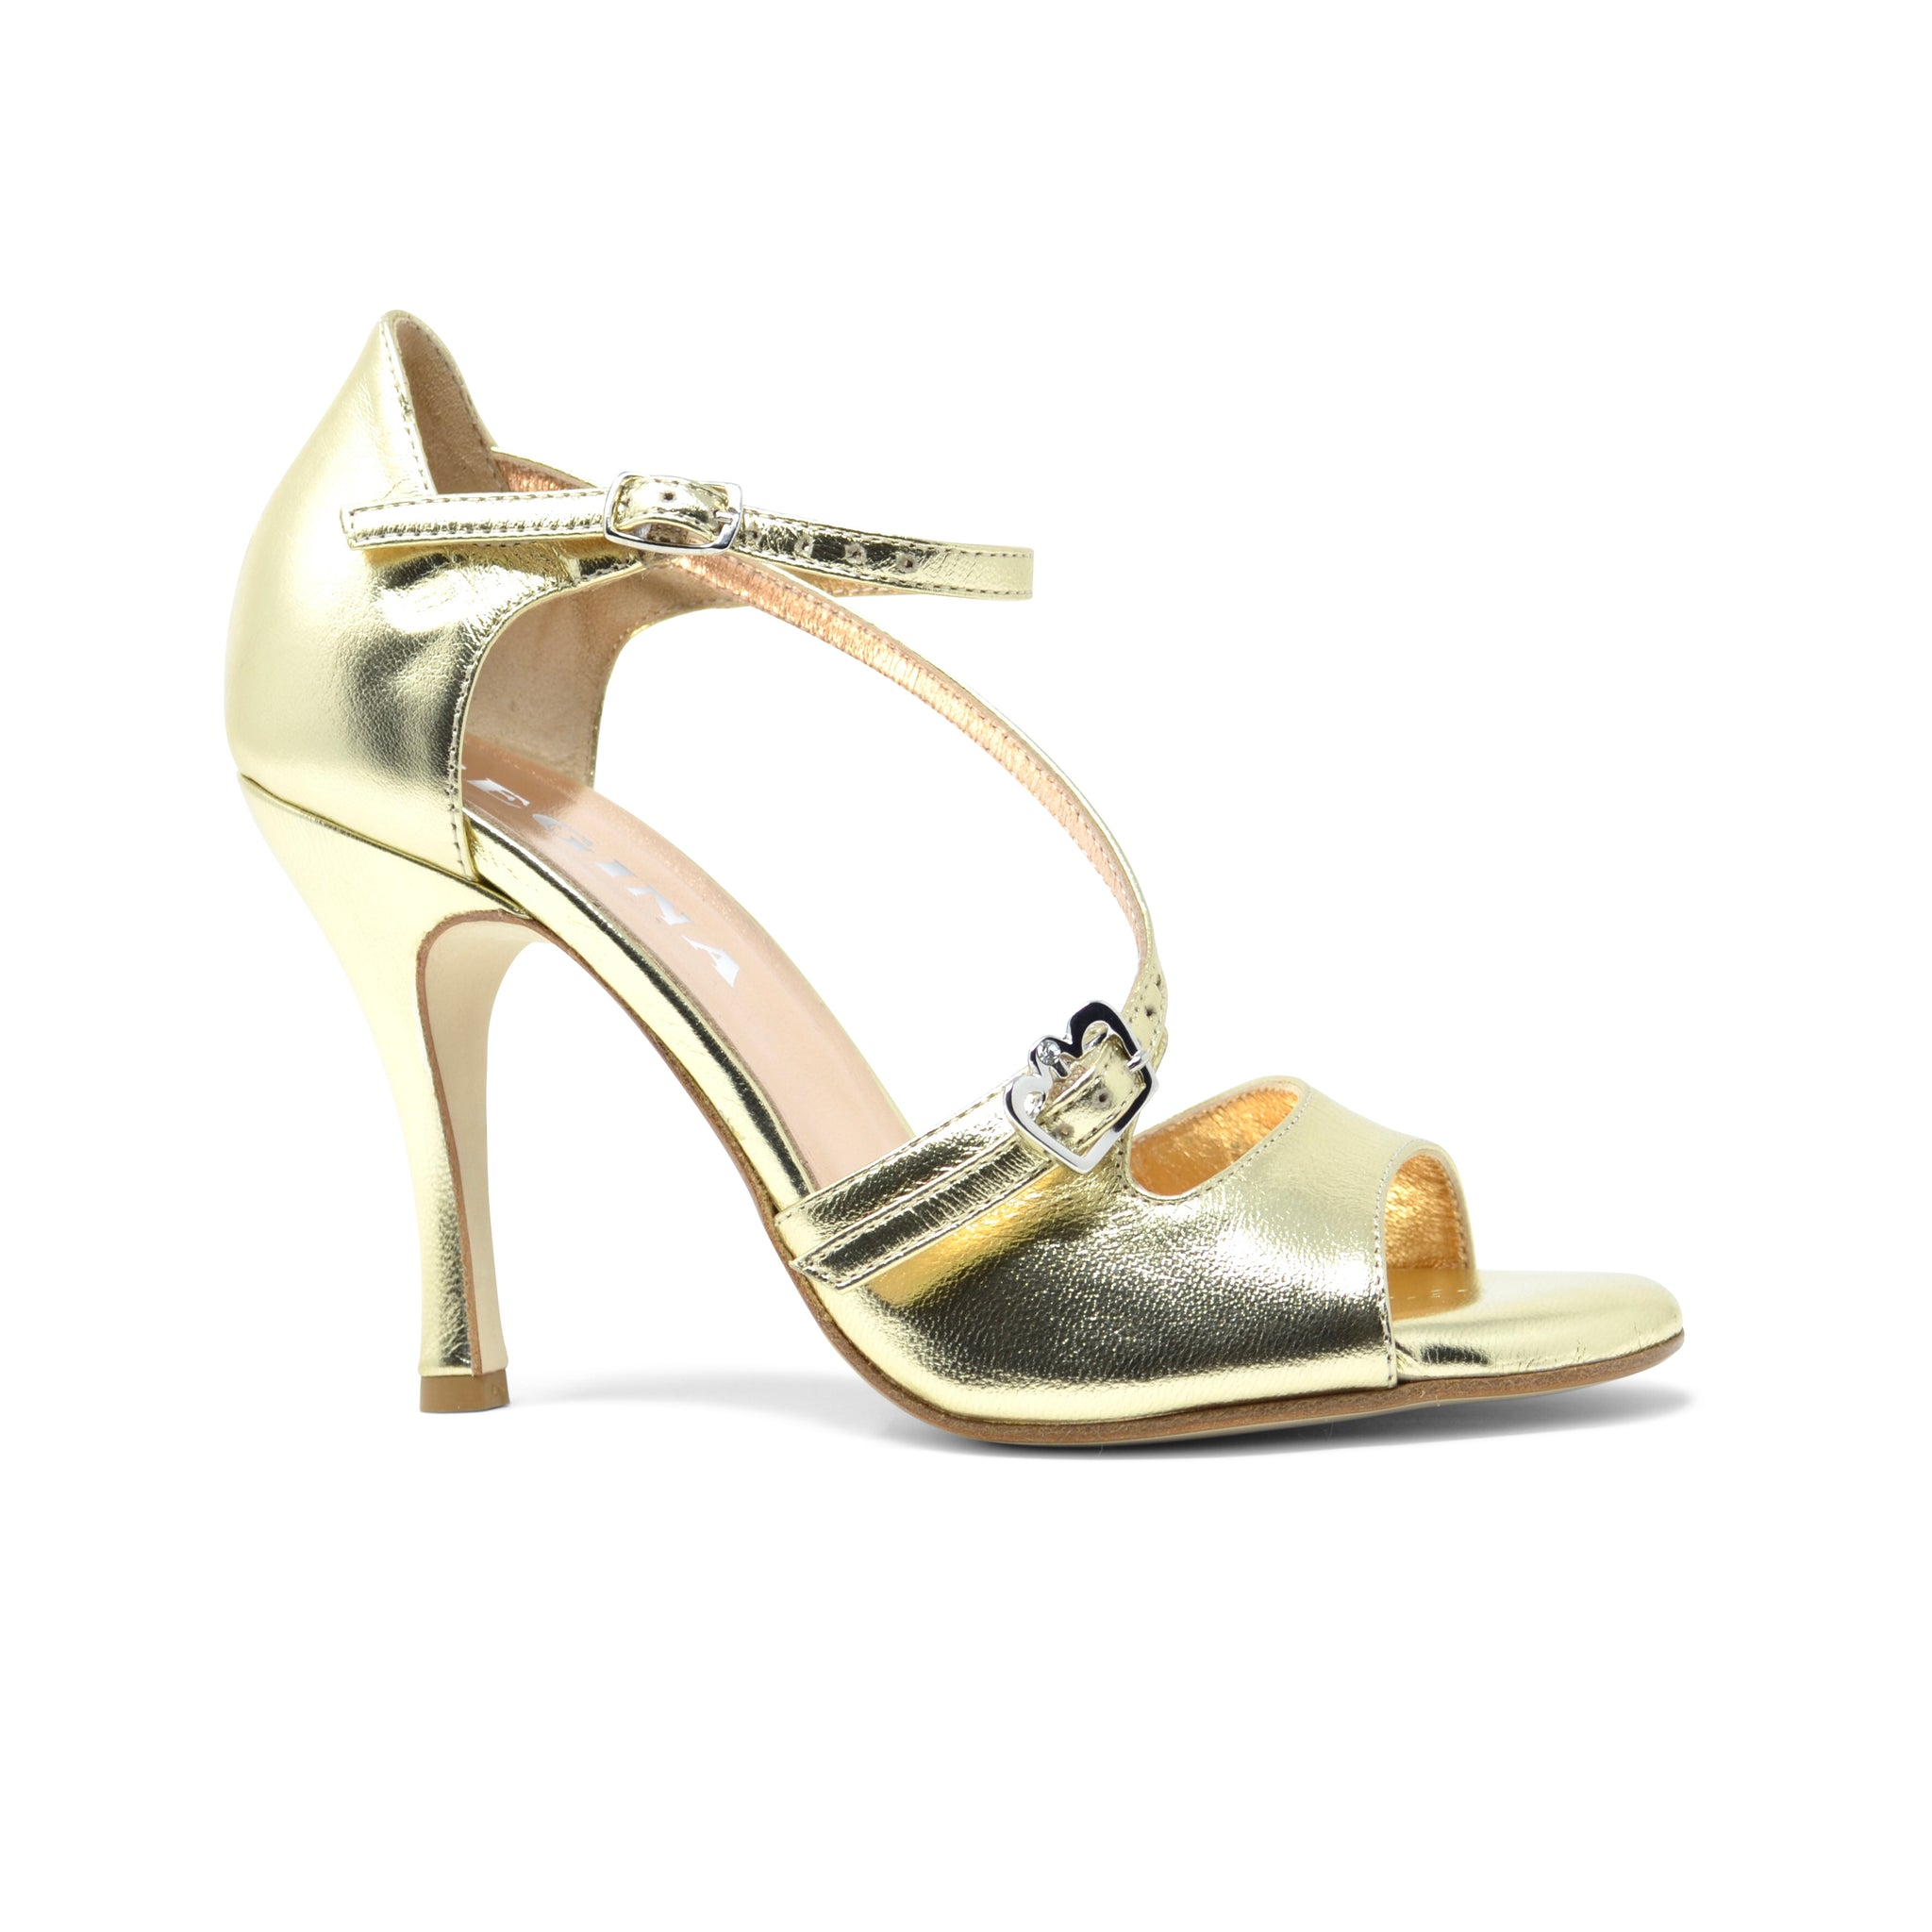 Size 5 - Venere in Metallic Gold Leather - Regina